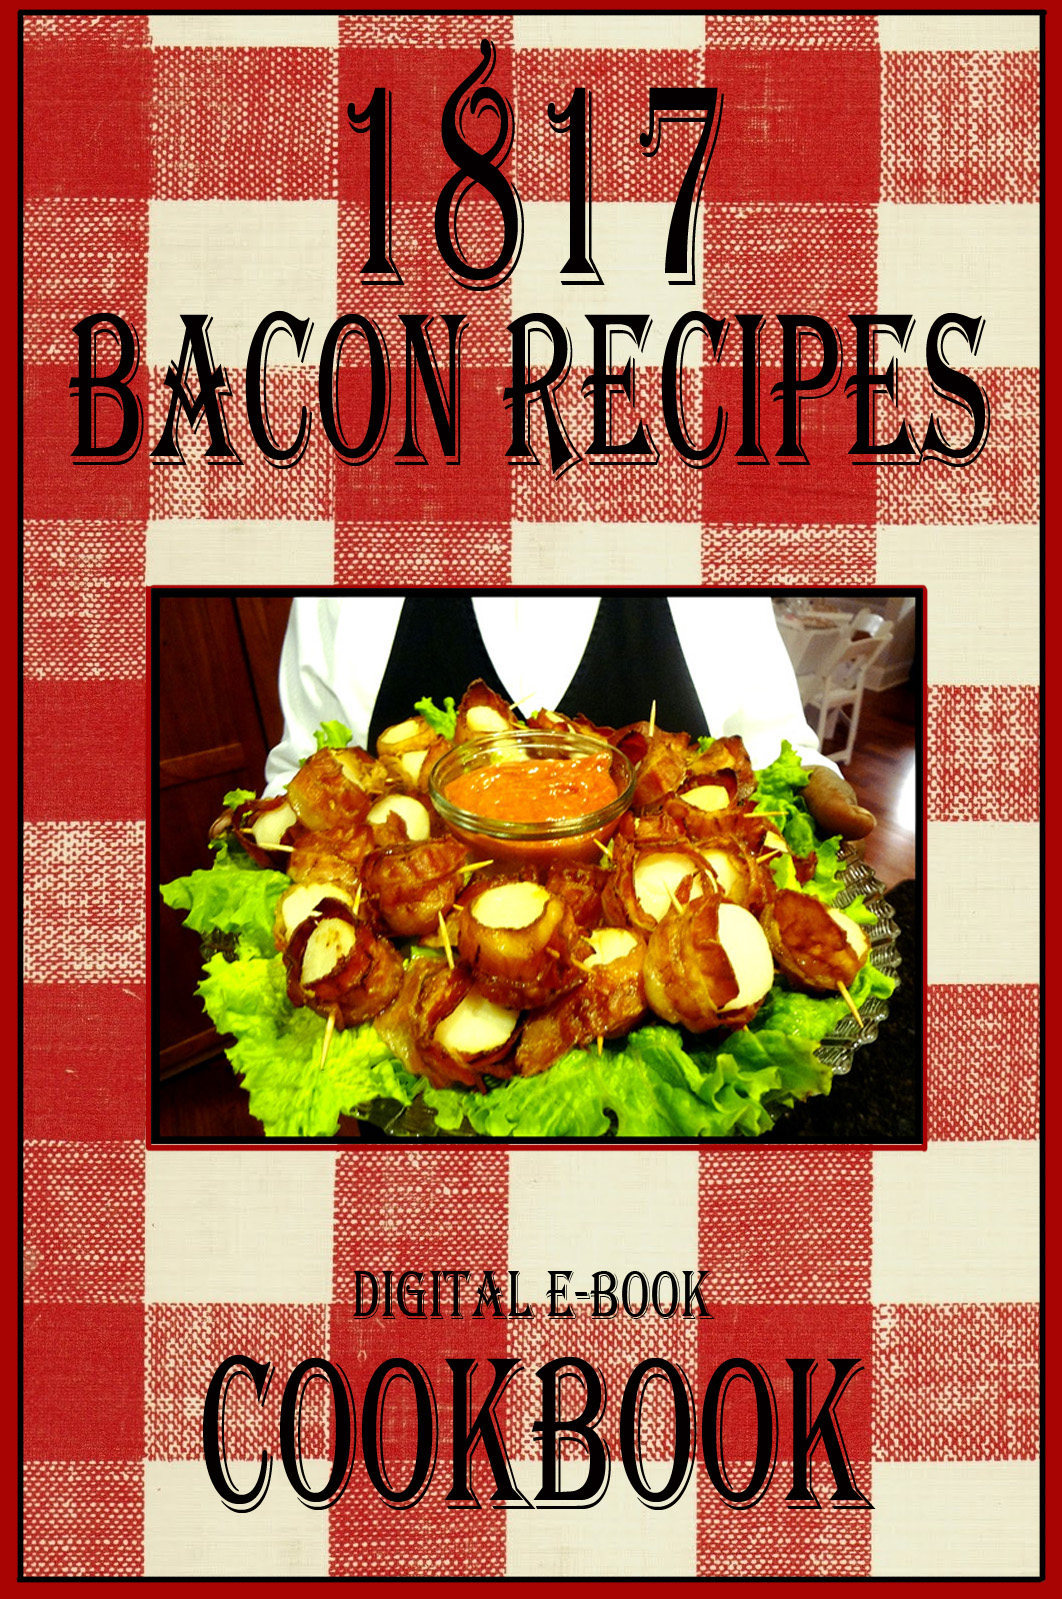 The bacon cookbook 1817 recipes pdf and similar items il fullxfull1312741011 3smz forumfinder Images